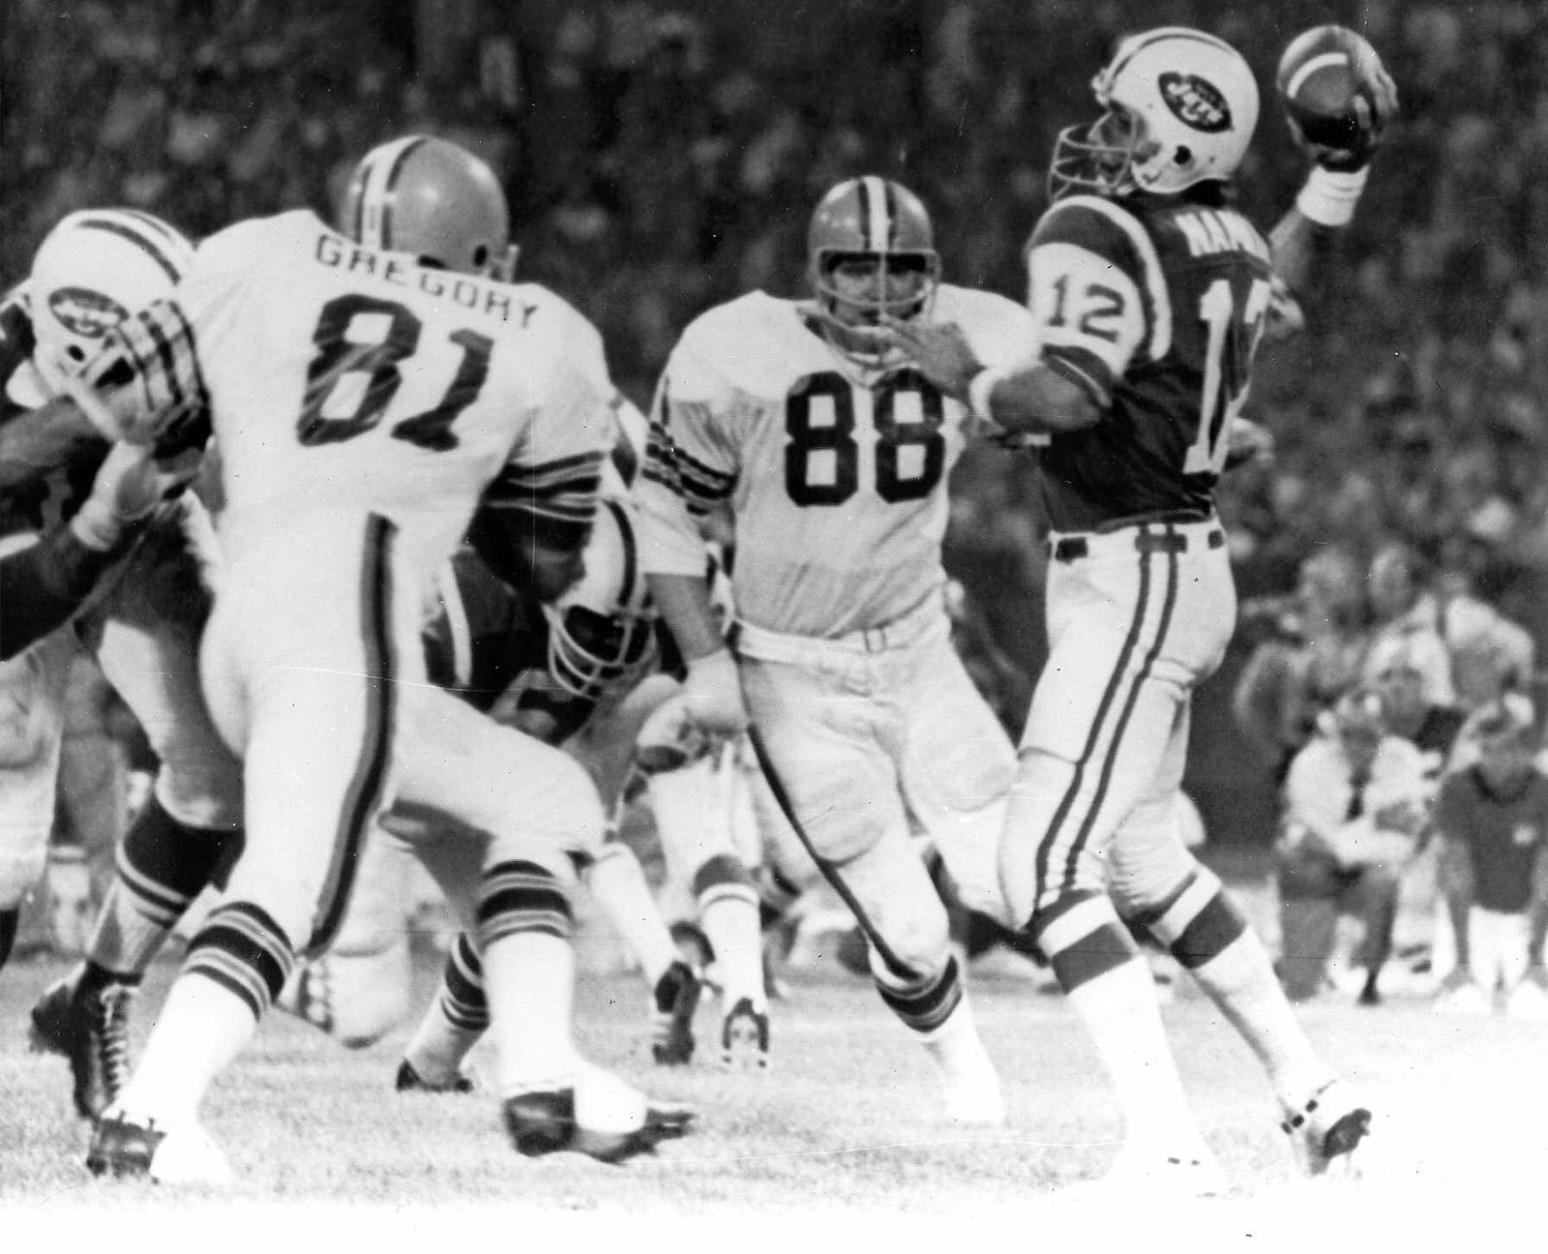 Cleveland Browns defensive ends Jack Gregory (81) and Ron Snidow (88) blast through the New York Jets protection and nab quarterback Joe Namath in the second quarter of their game in Cleveland, Ohio Sept 21, 1970. (AP Photo)